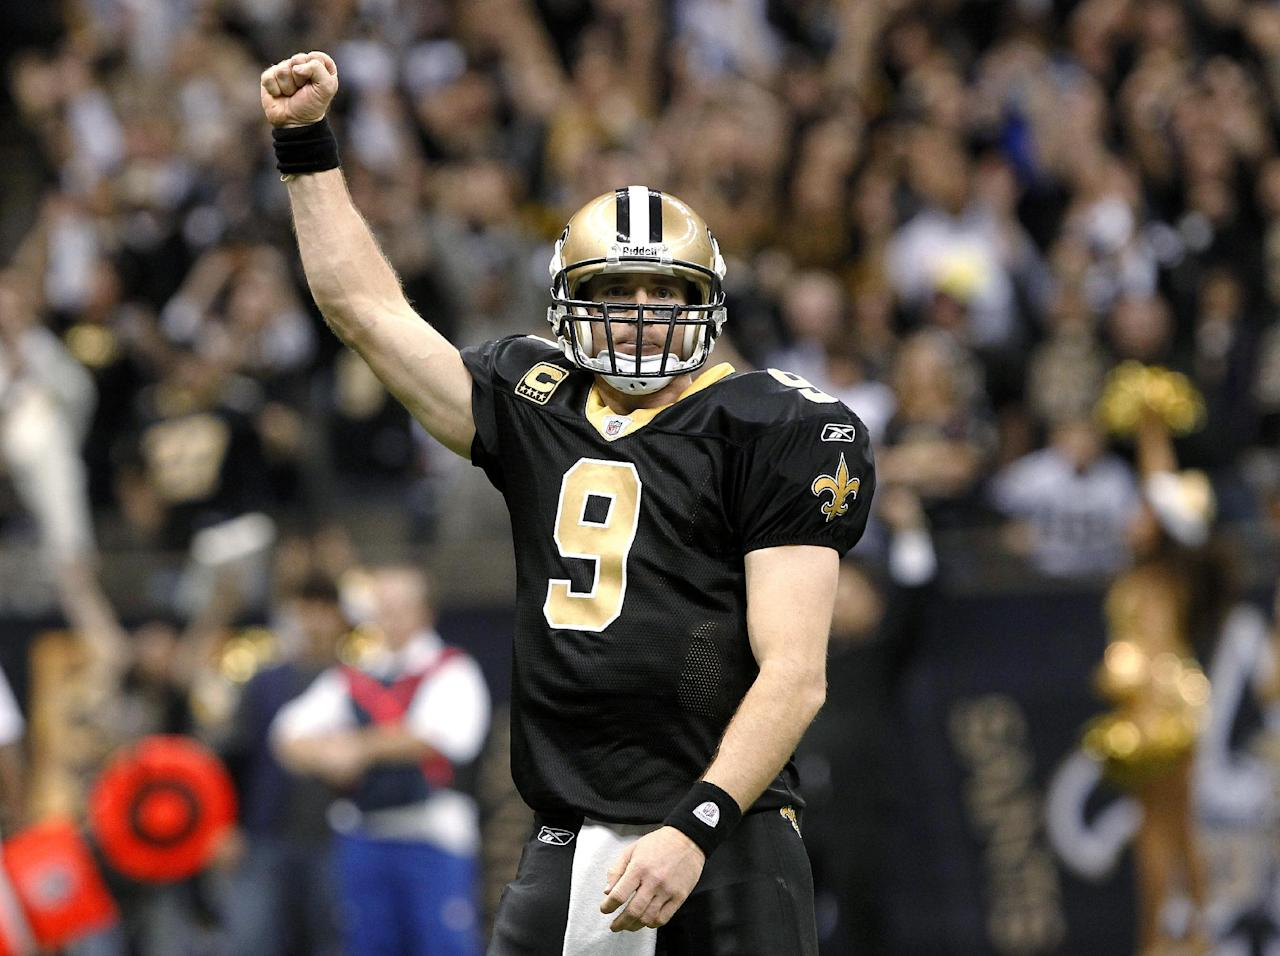 New Orleans Saints quarterback Drew Brees celebrates after throwing a touchdown pass and breaking the NFL single-season record for passing yardage, held by Dan Marino, in the fourth quarter of an NFL football game against the Atlanta Falcons in New Orleans, Monday, Dec. 26, 2011. (AP Photo/Rusty Costanza)